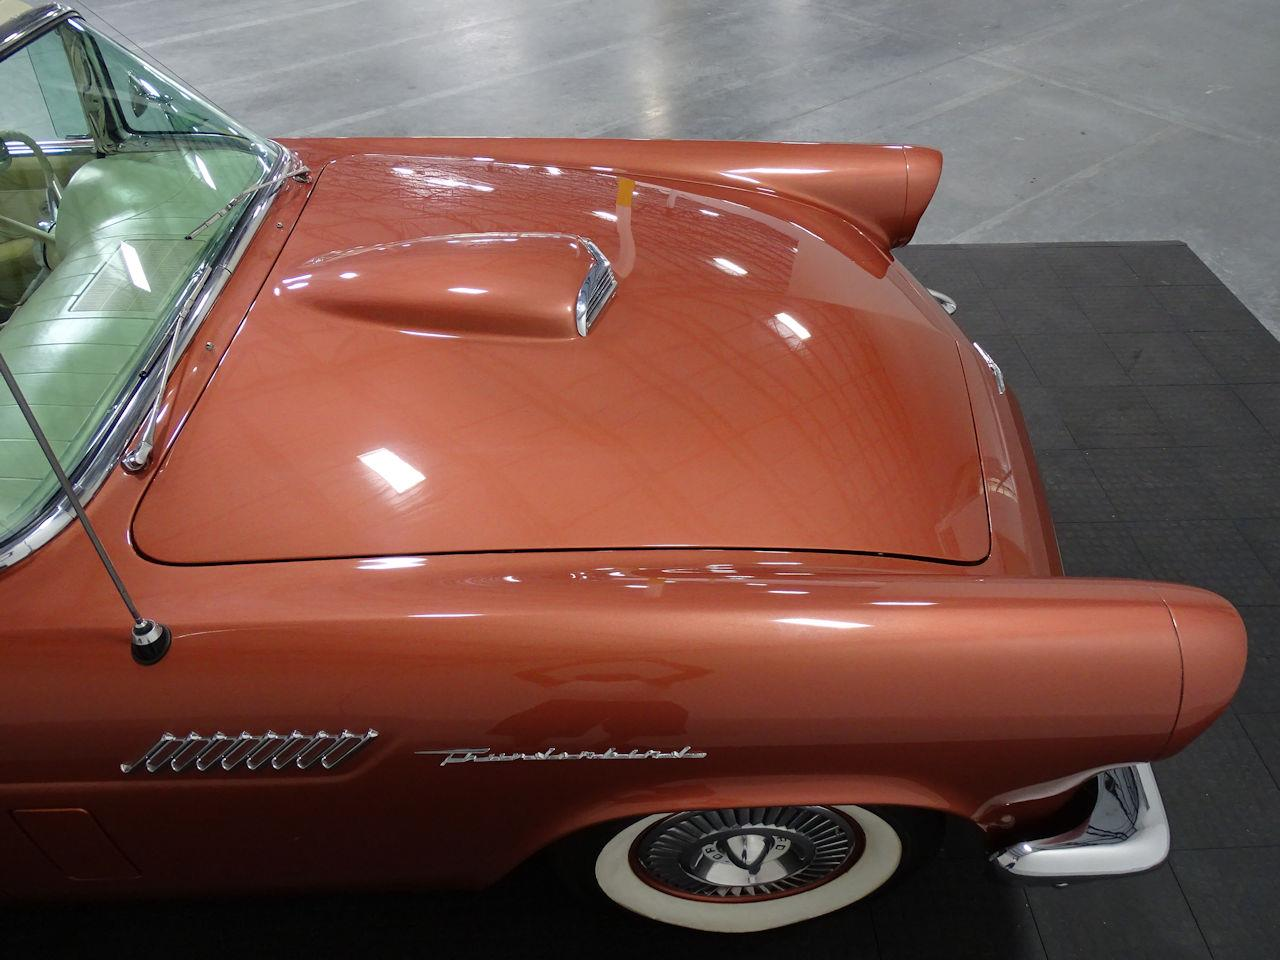 Large Picture of Classic 1957 Ford Thunderbird located in Texas - $55,000.00 - LUKB